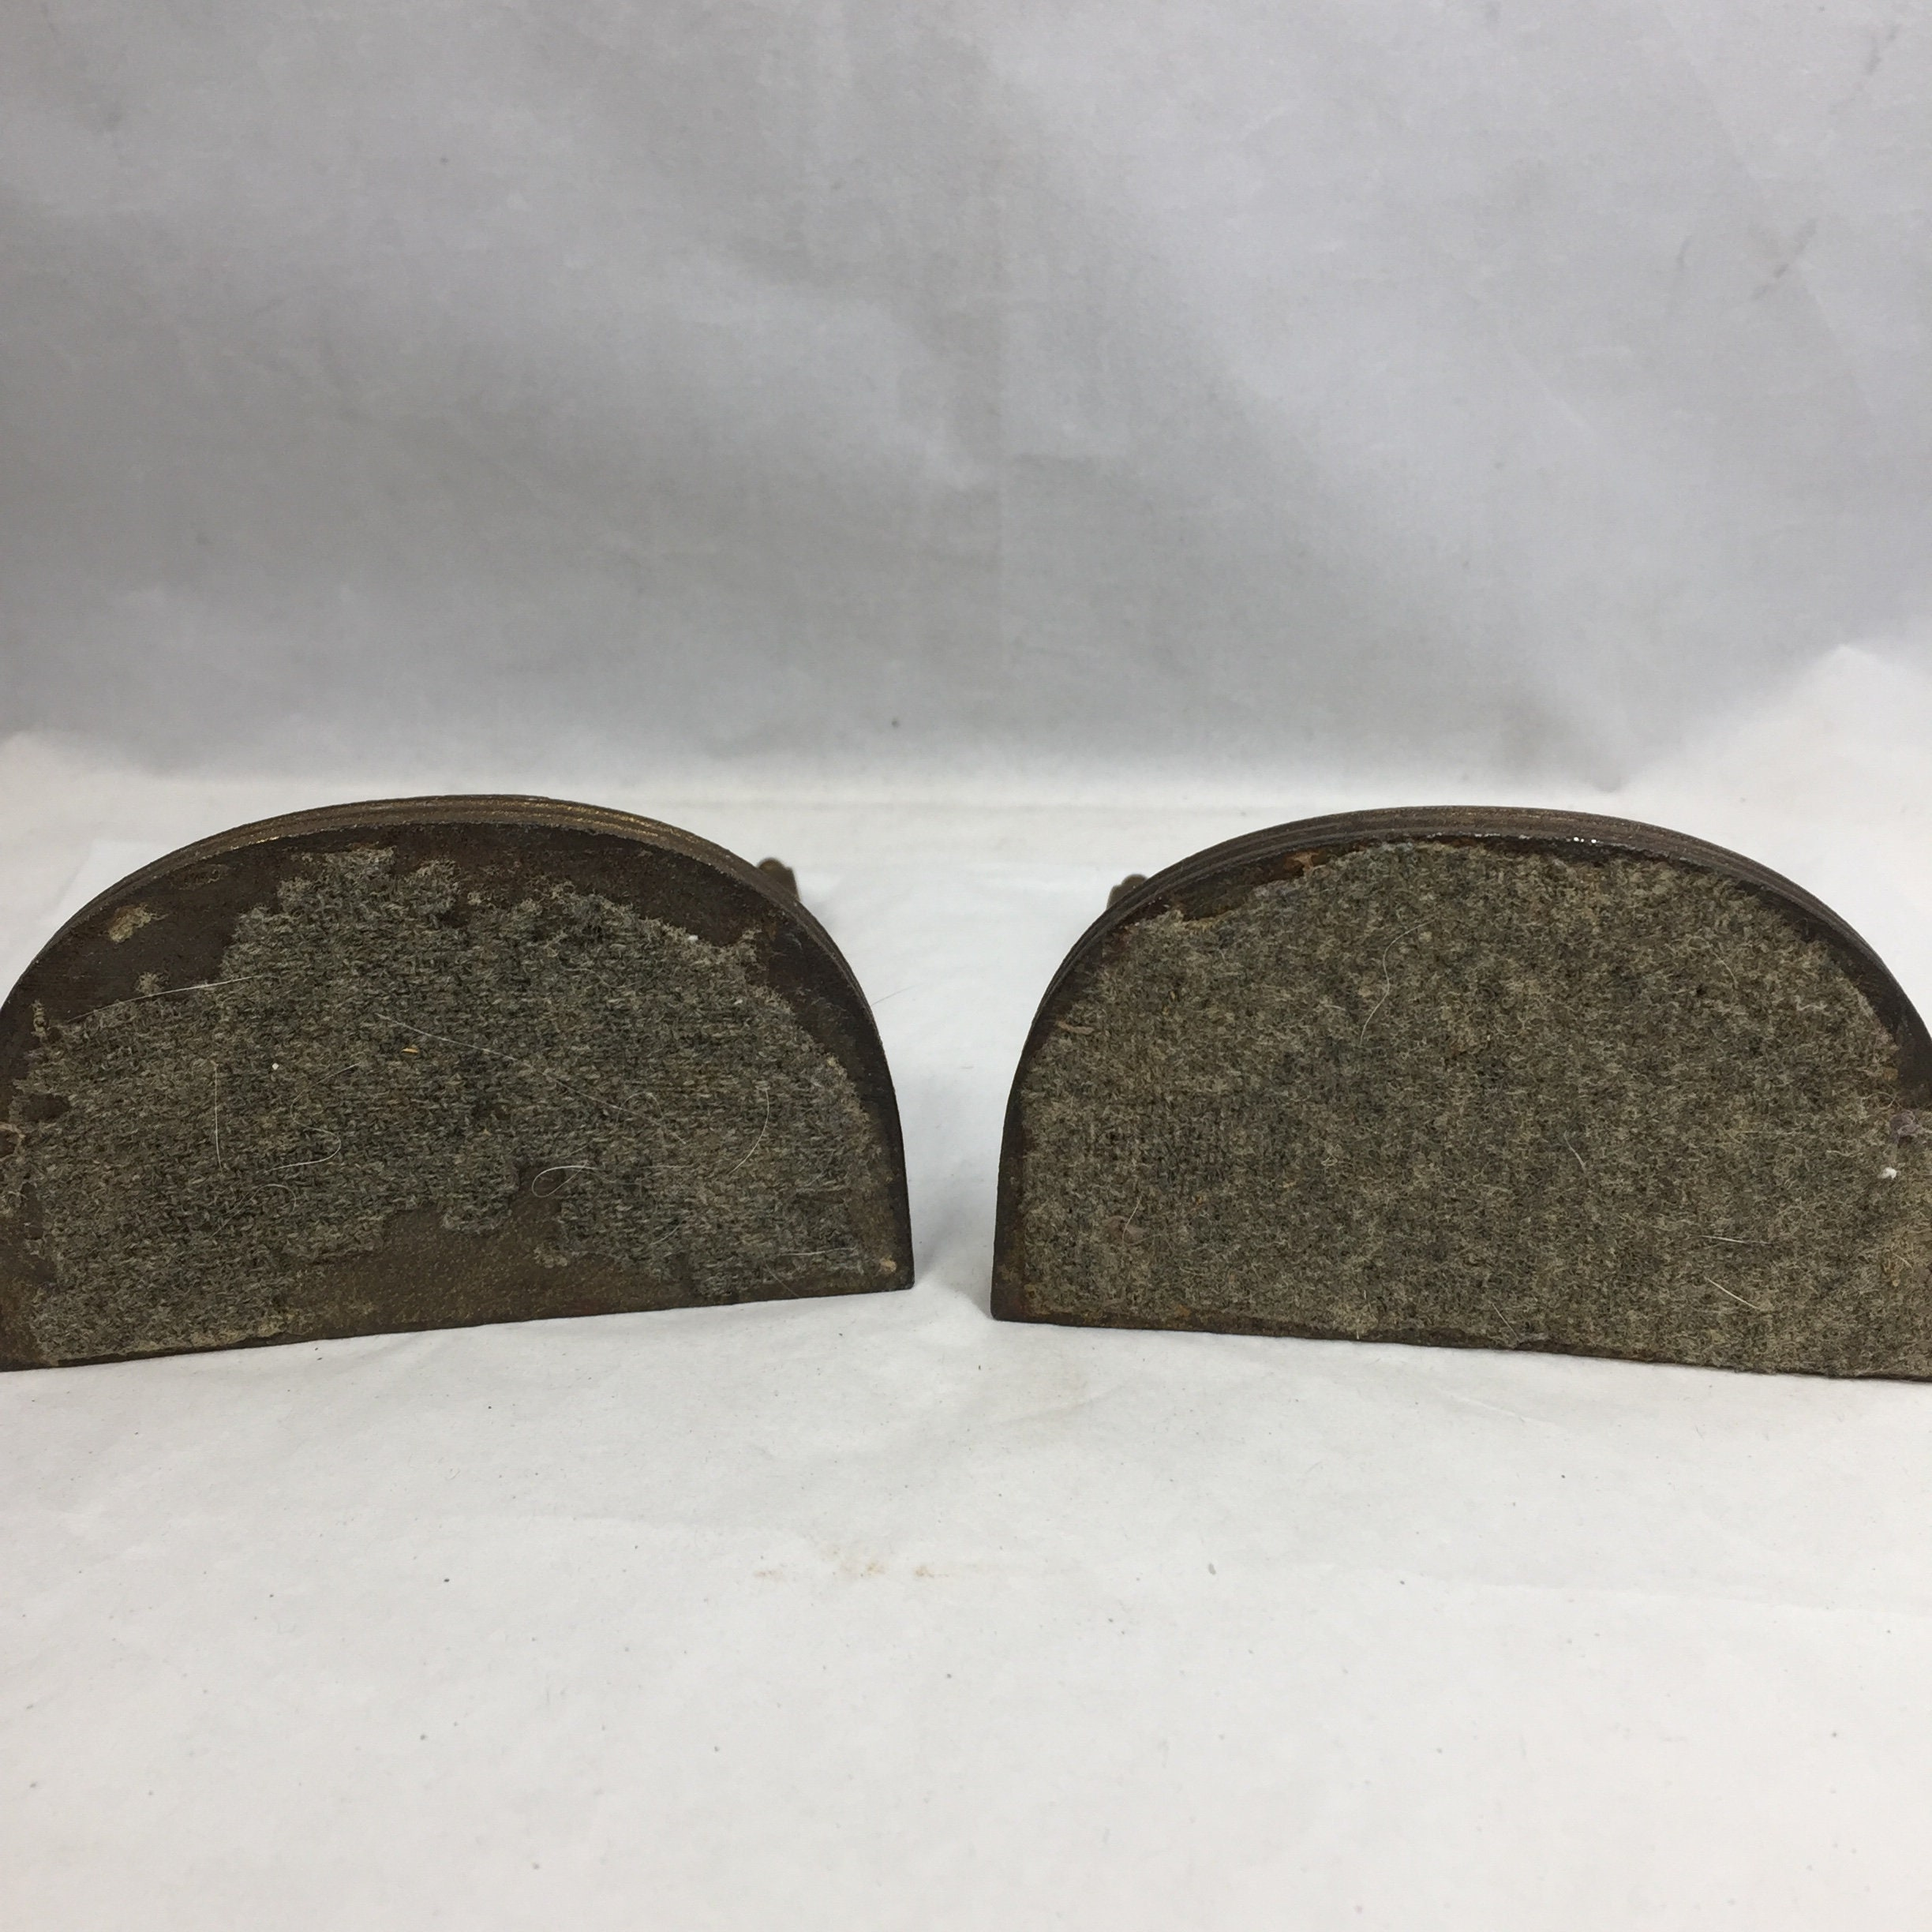 Image 4 of Antique Bradley and Hubbard Bookends